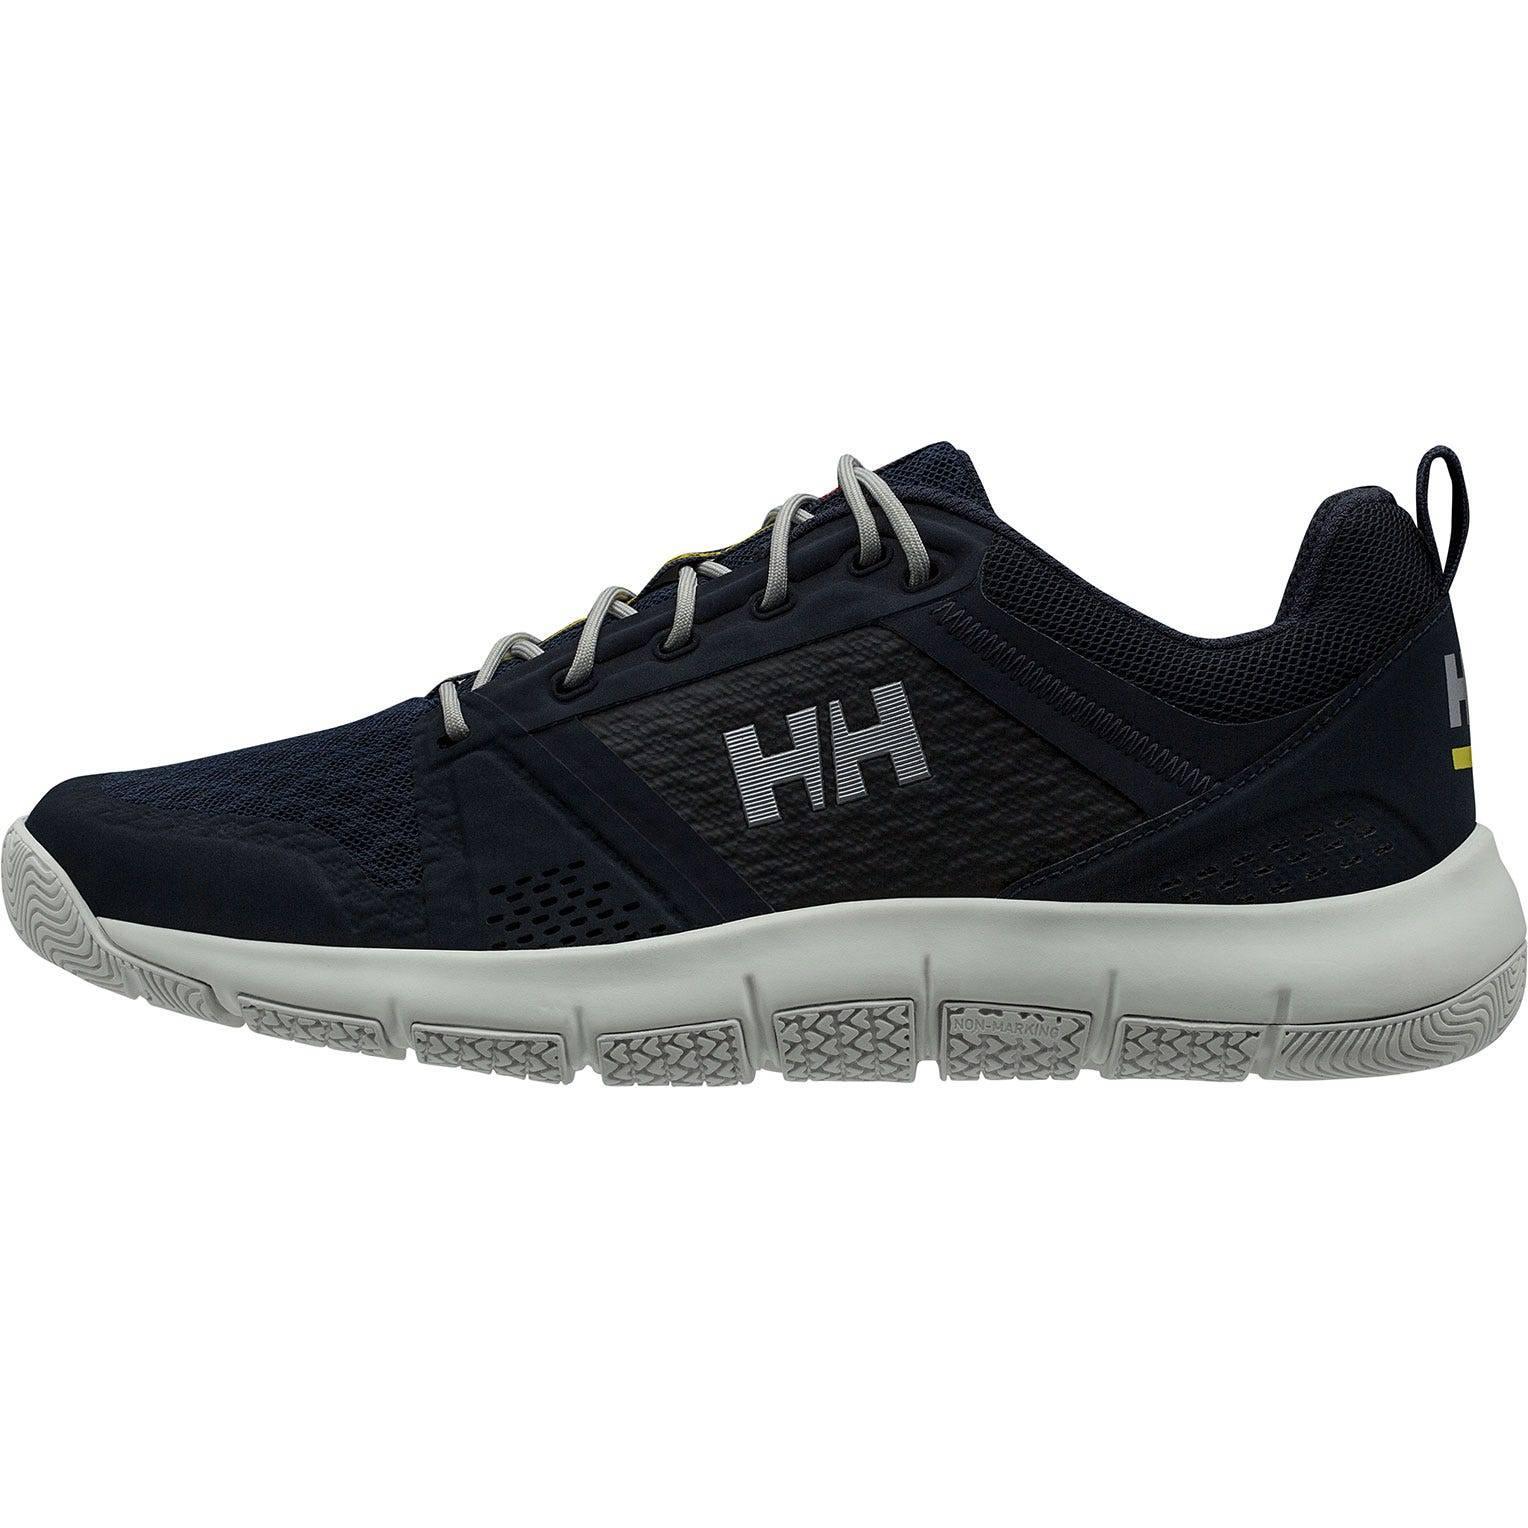 Helly Hansen W Skagen F1 Offshore Womens Sailing Shoe Navy 40.5/9